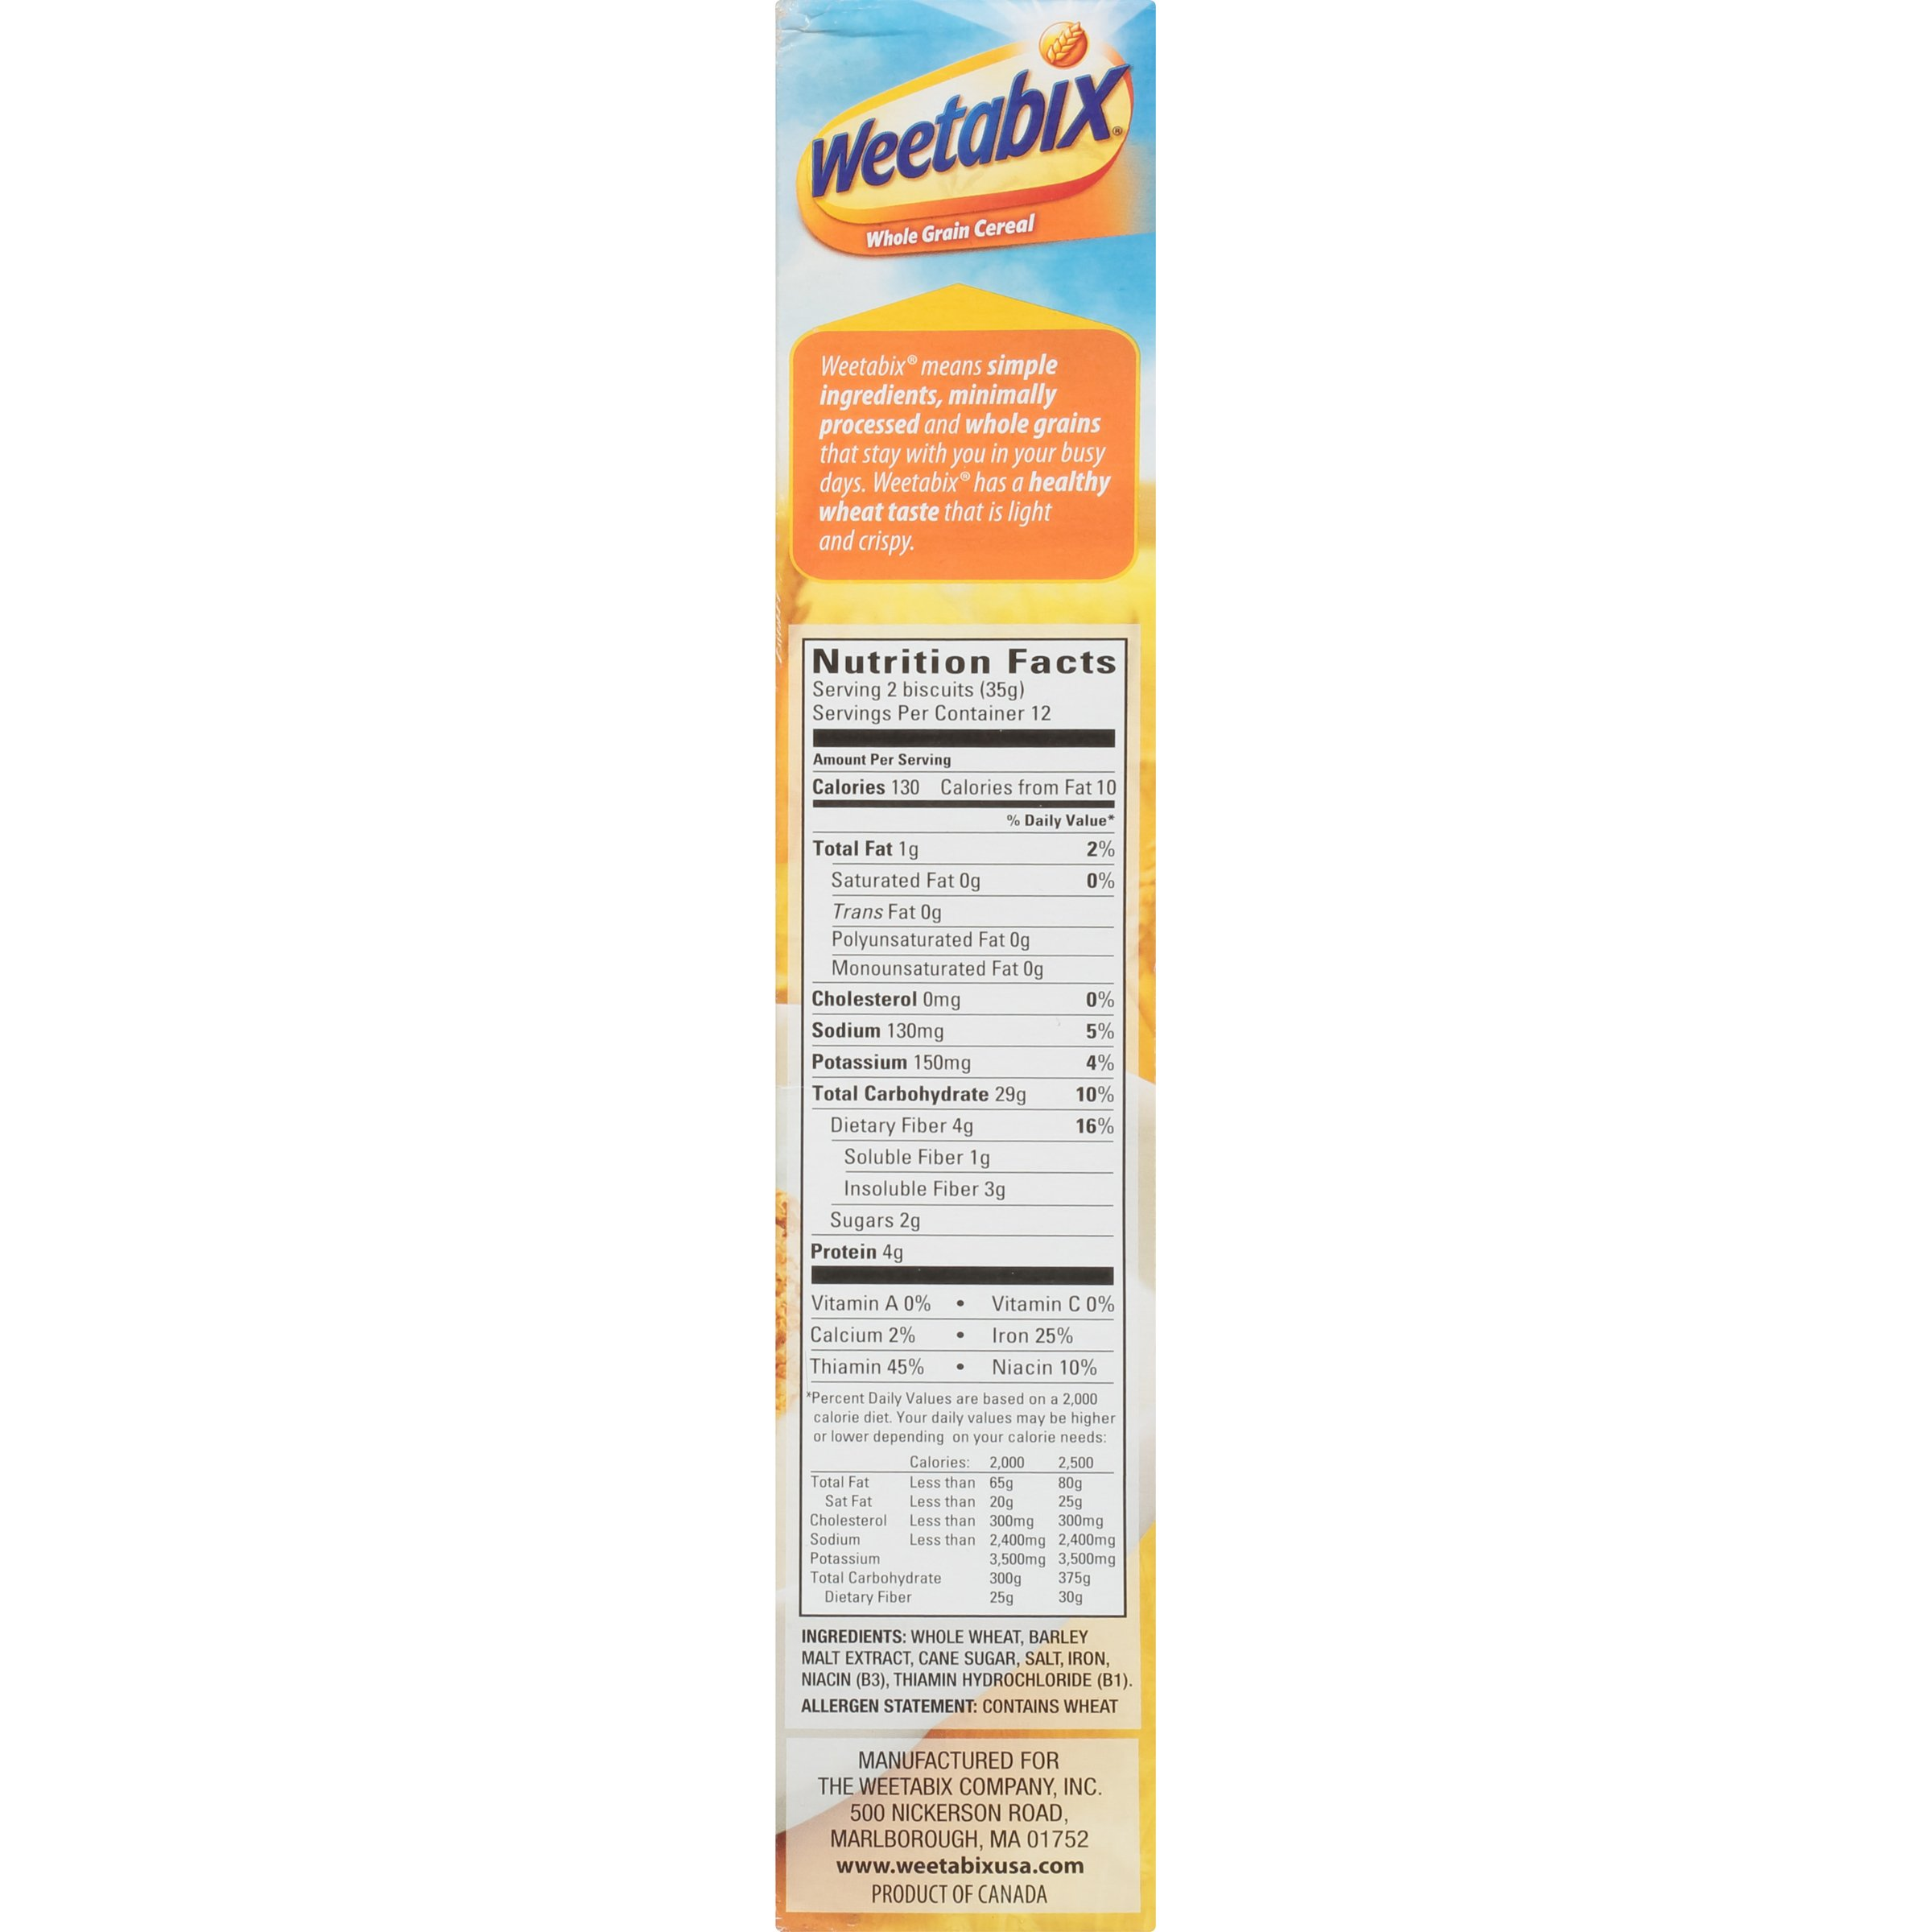 Weetabix Whole Grain Cereal, 14 Ounce (Pack of 6) by Weetabix (Image #11)